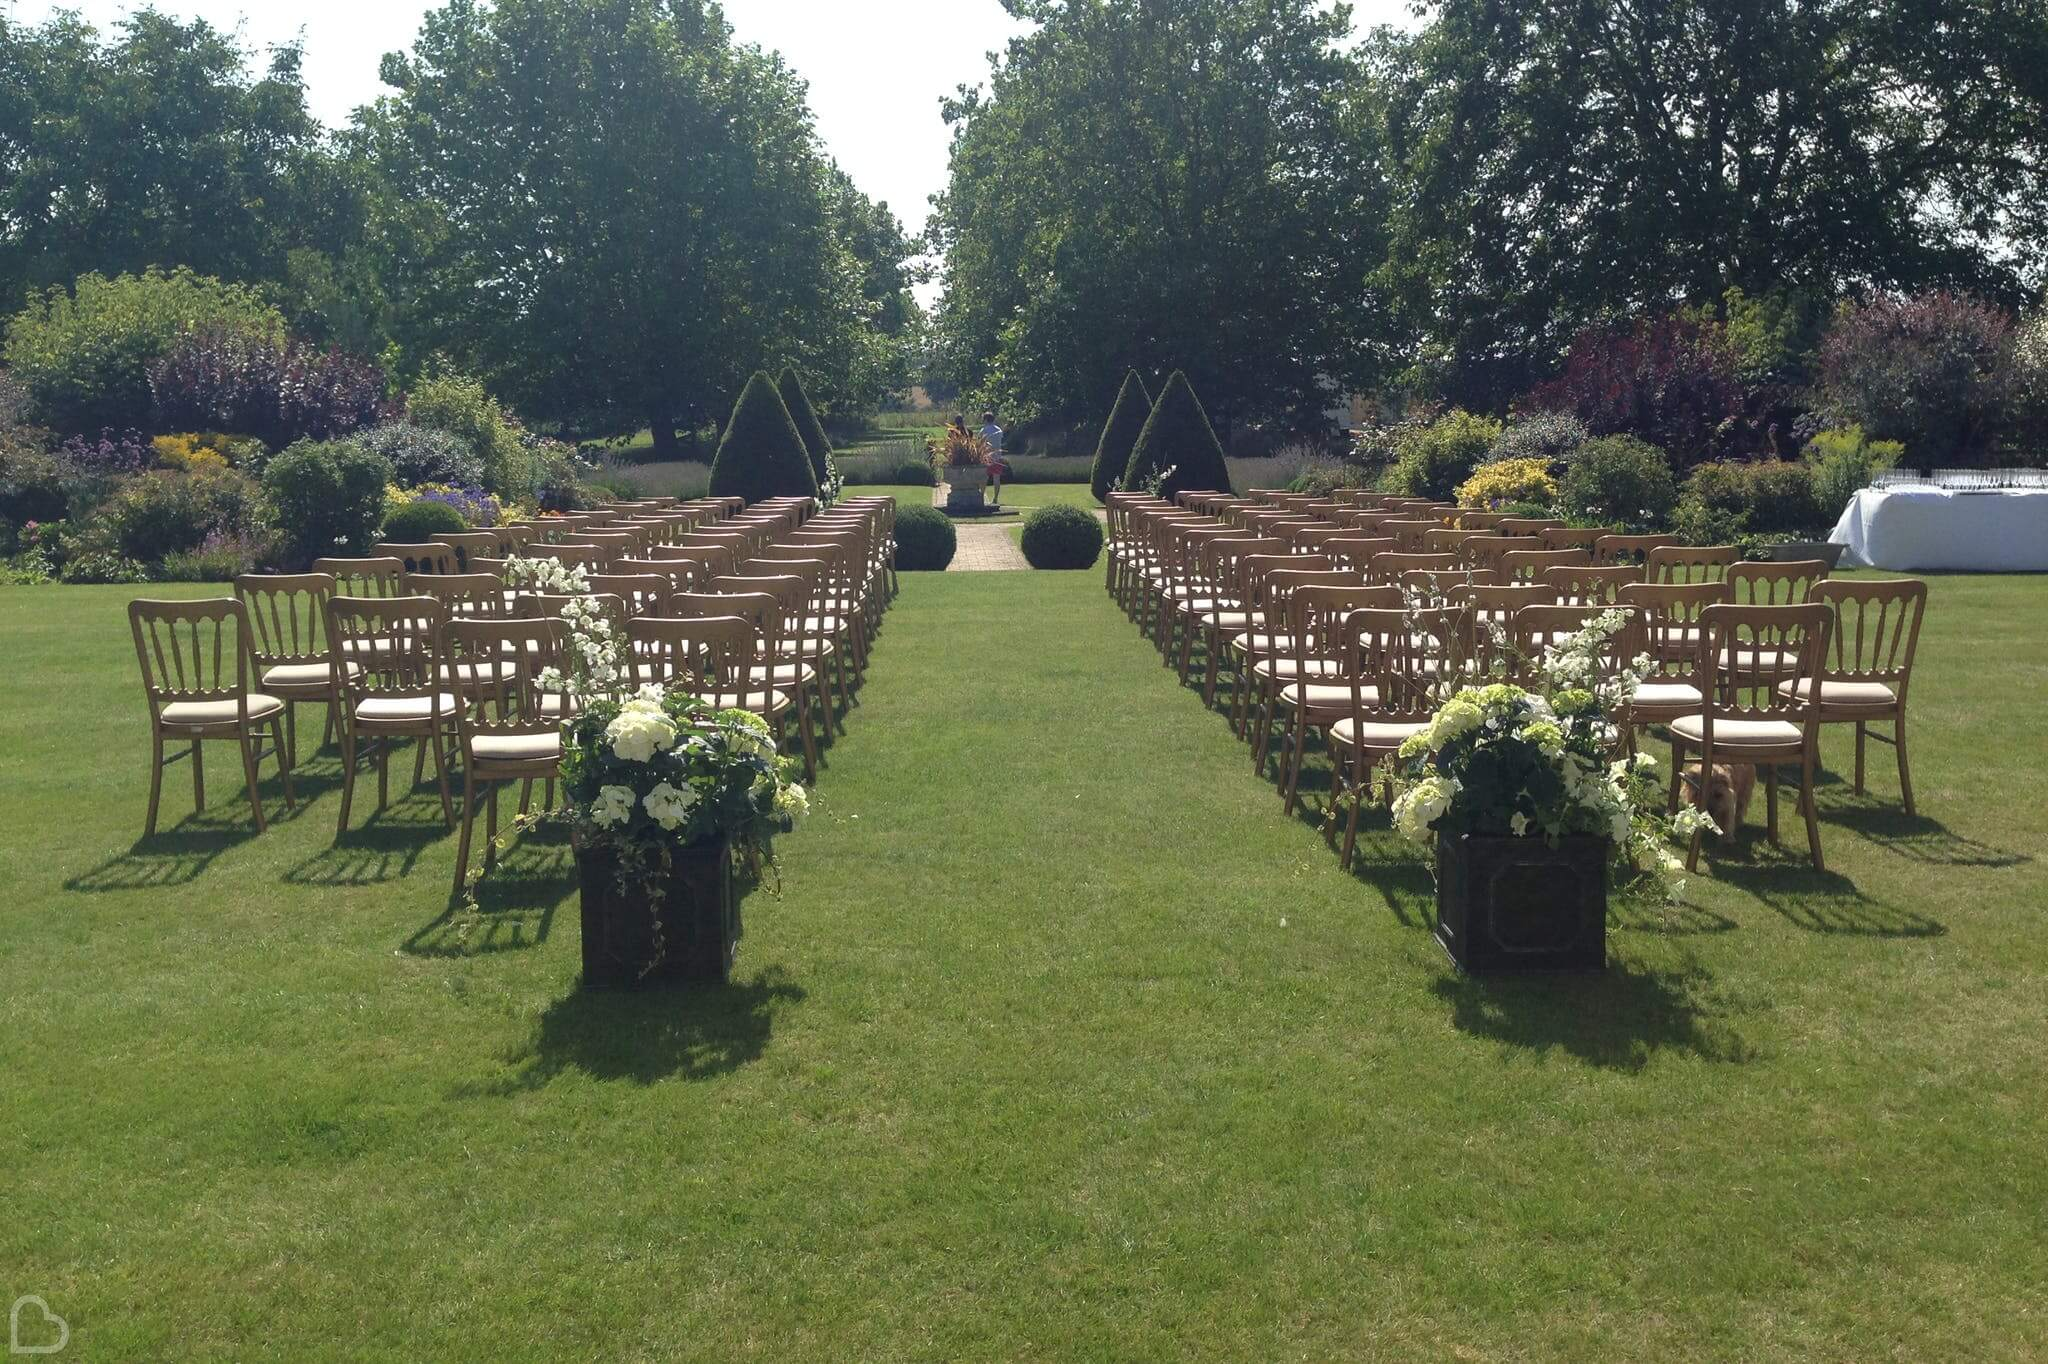 Outdoor wedding ceremony set up at hockering house in norfolk.